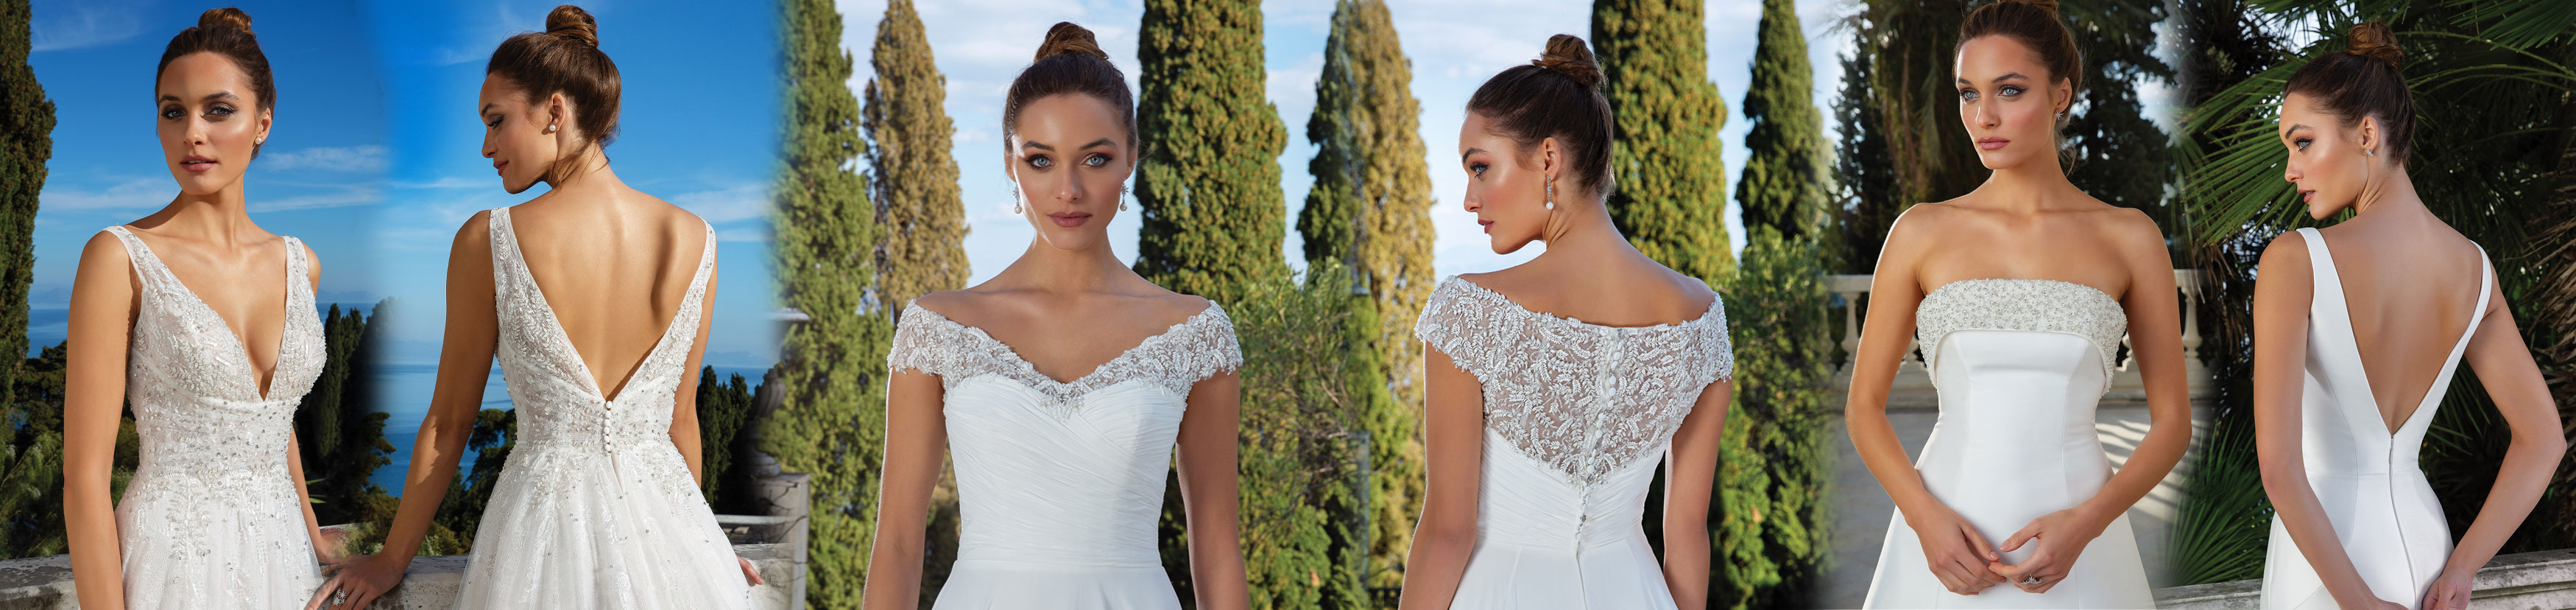 JUSTIN ALEXANDER Bridal gowns from Cheshire Brides Frodsham